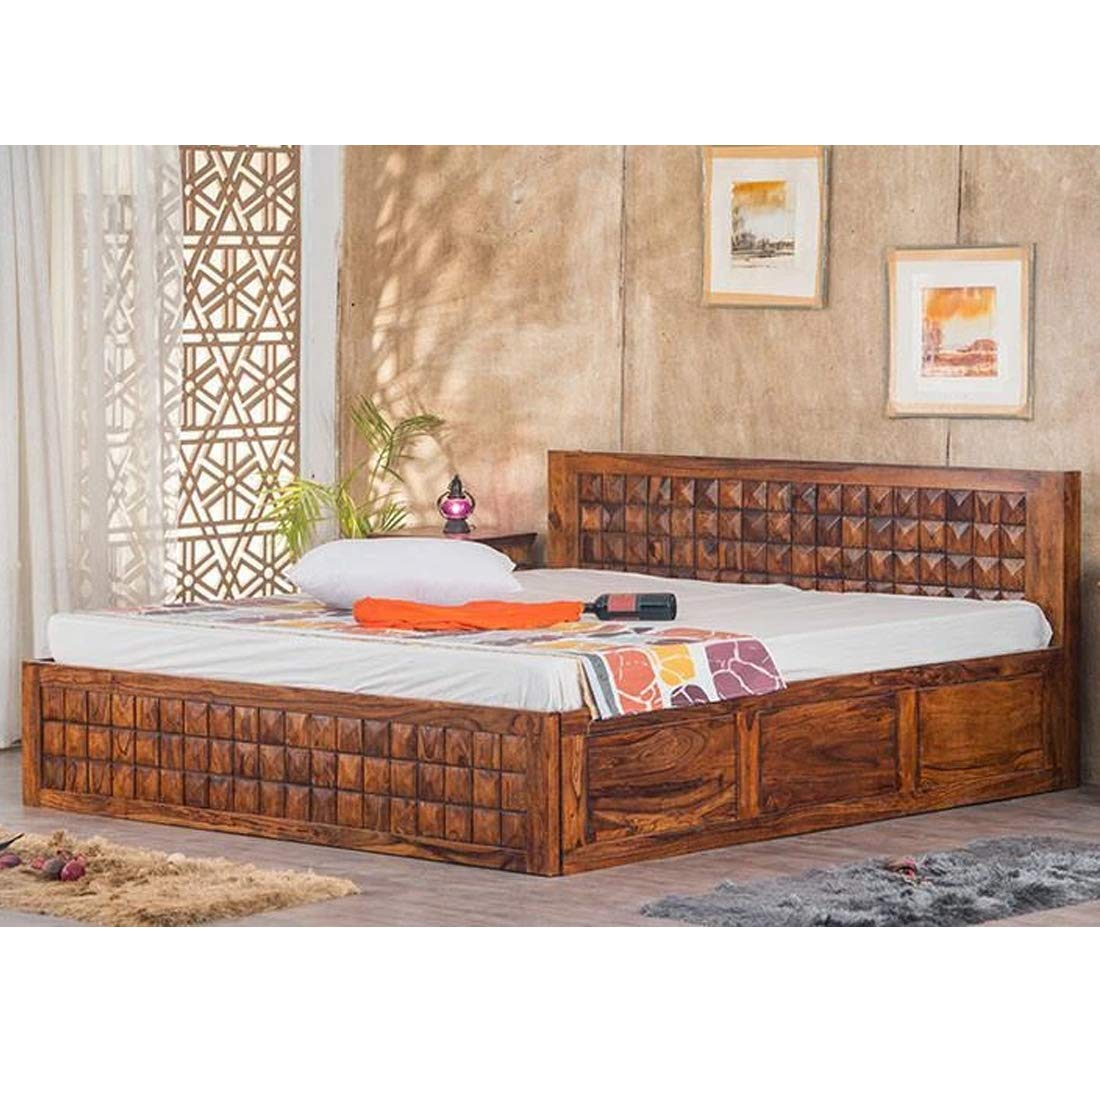 Furny Bohemian Teak Wood King Size Bed with Storage Teak from Ghana  9+  Years Life with Assurance  Termite & Bore Treated  Customization & EMI